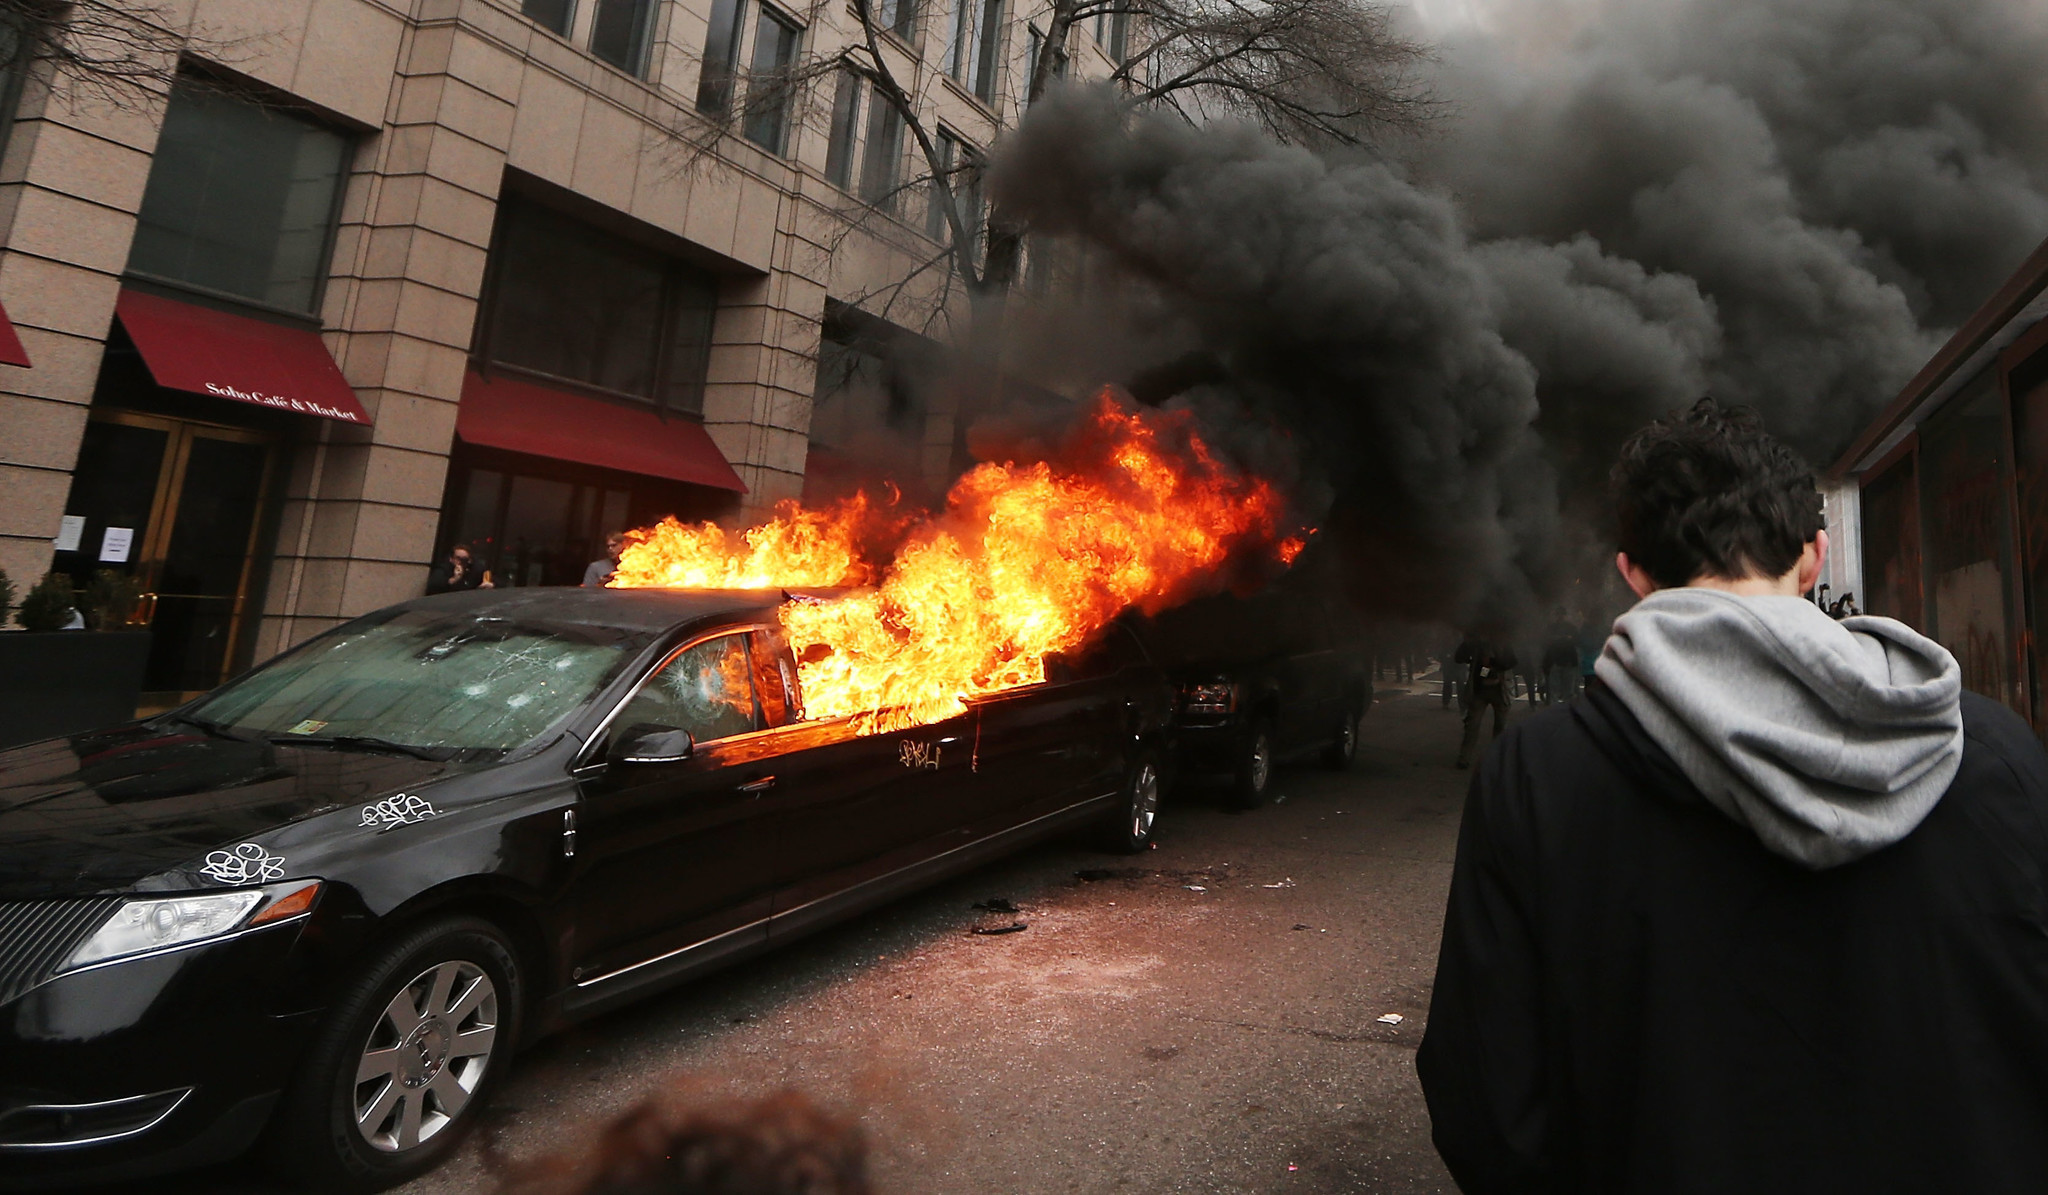 Angry protests and inaugural celebrations play out side by side in Washington